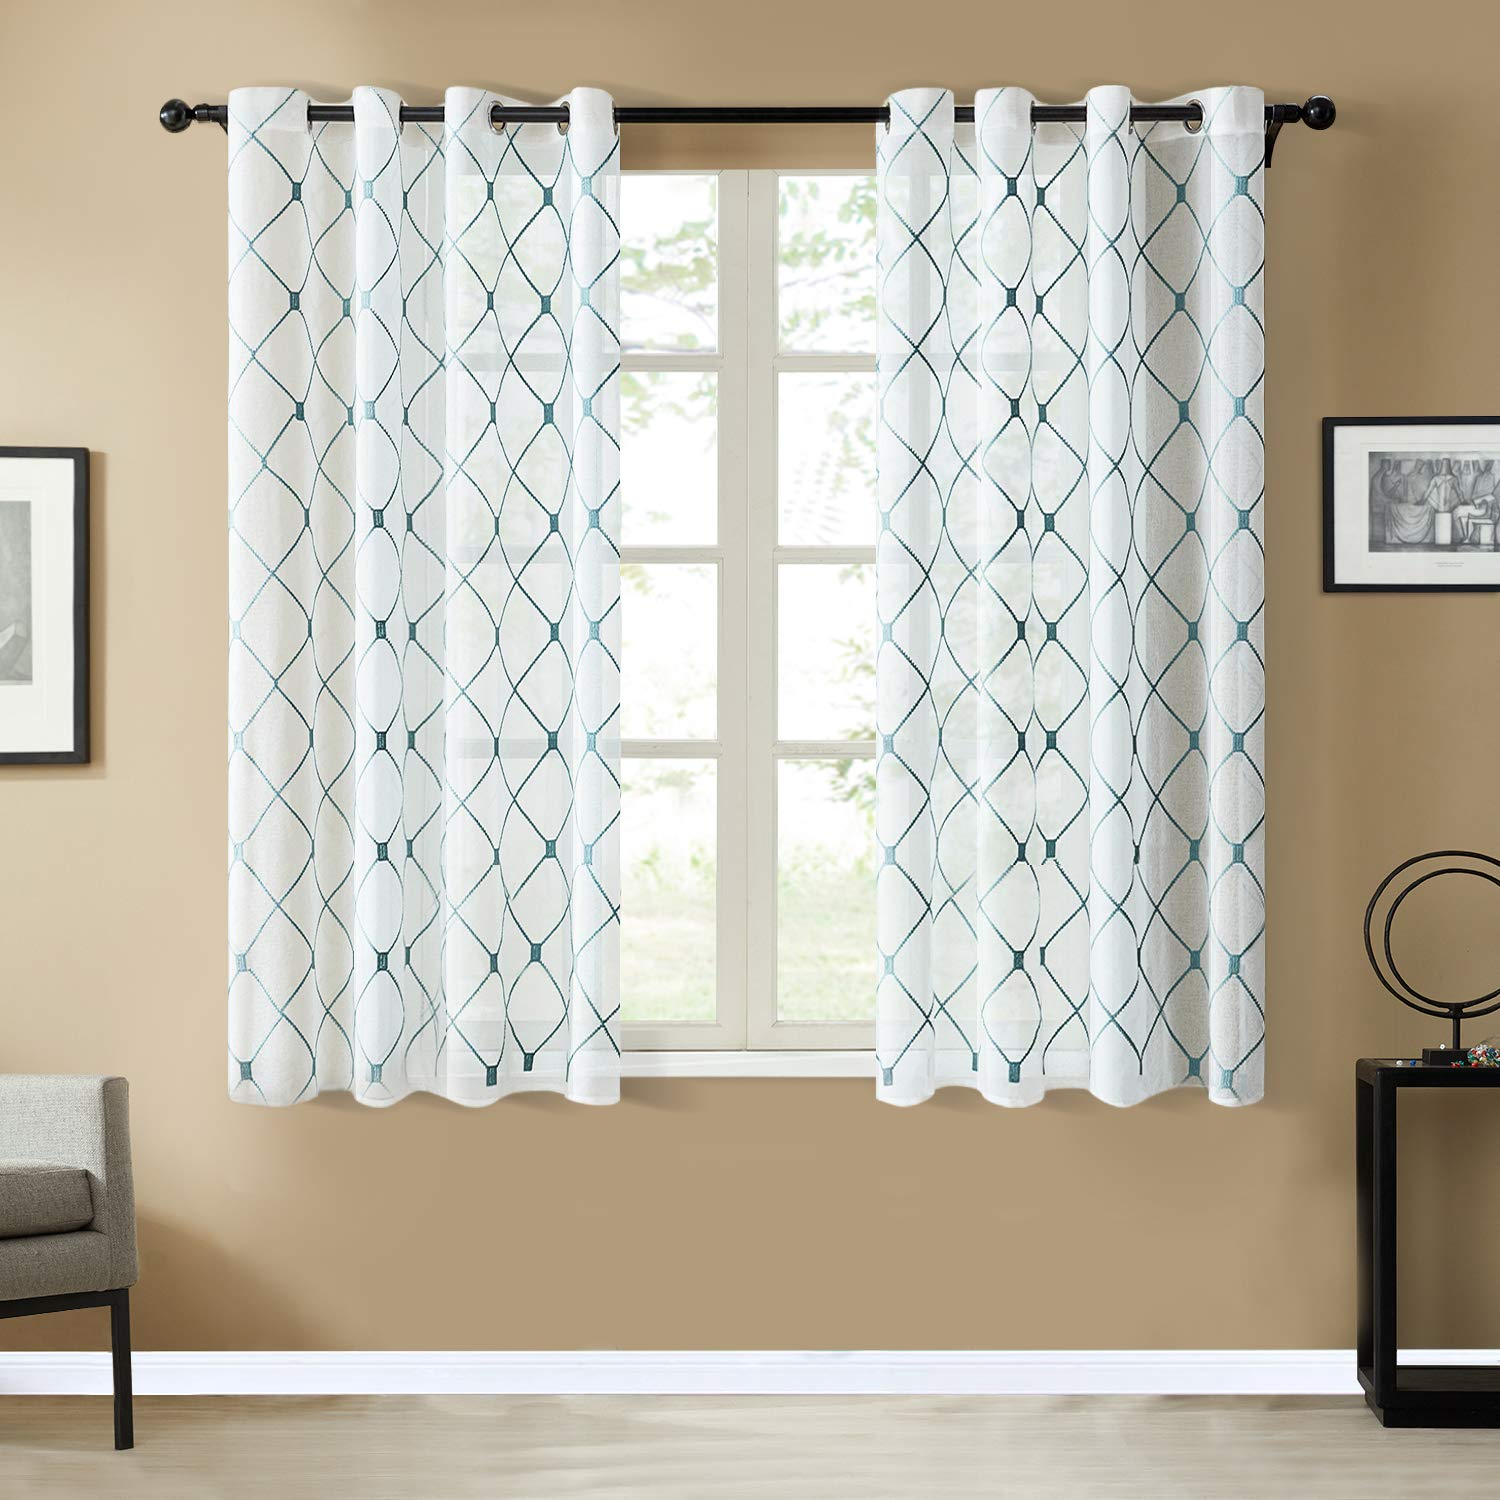 Top Finel White Short Sheer Curtains 54 Inch Length Teal Embroidered Diamond Grommet Window Curtains for Living Room Bedroom, 2 Panels